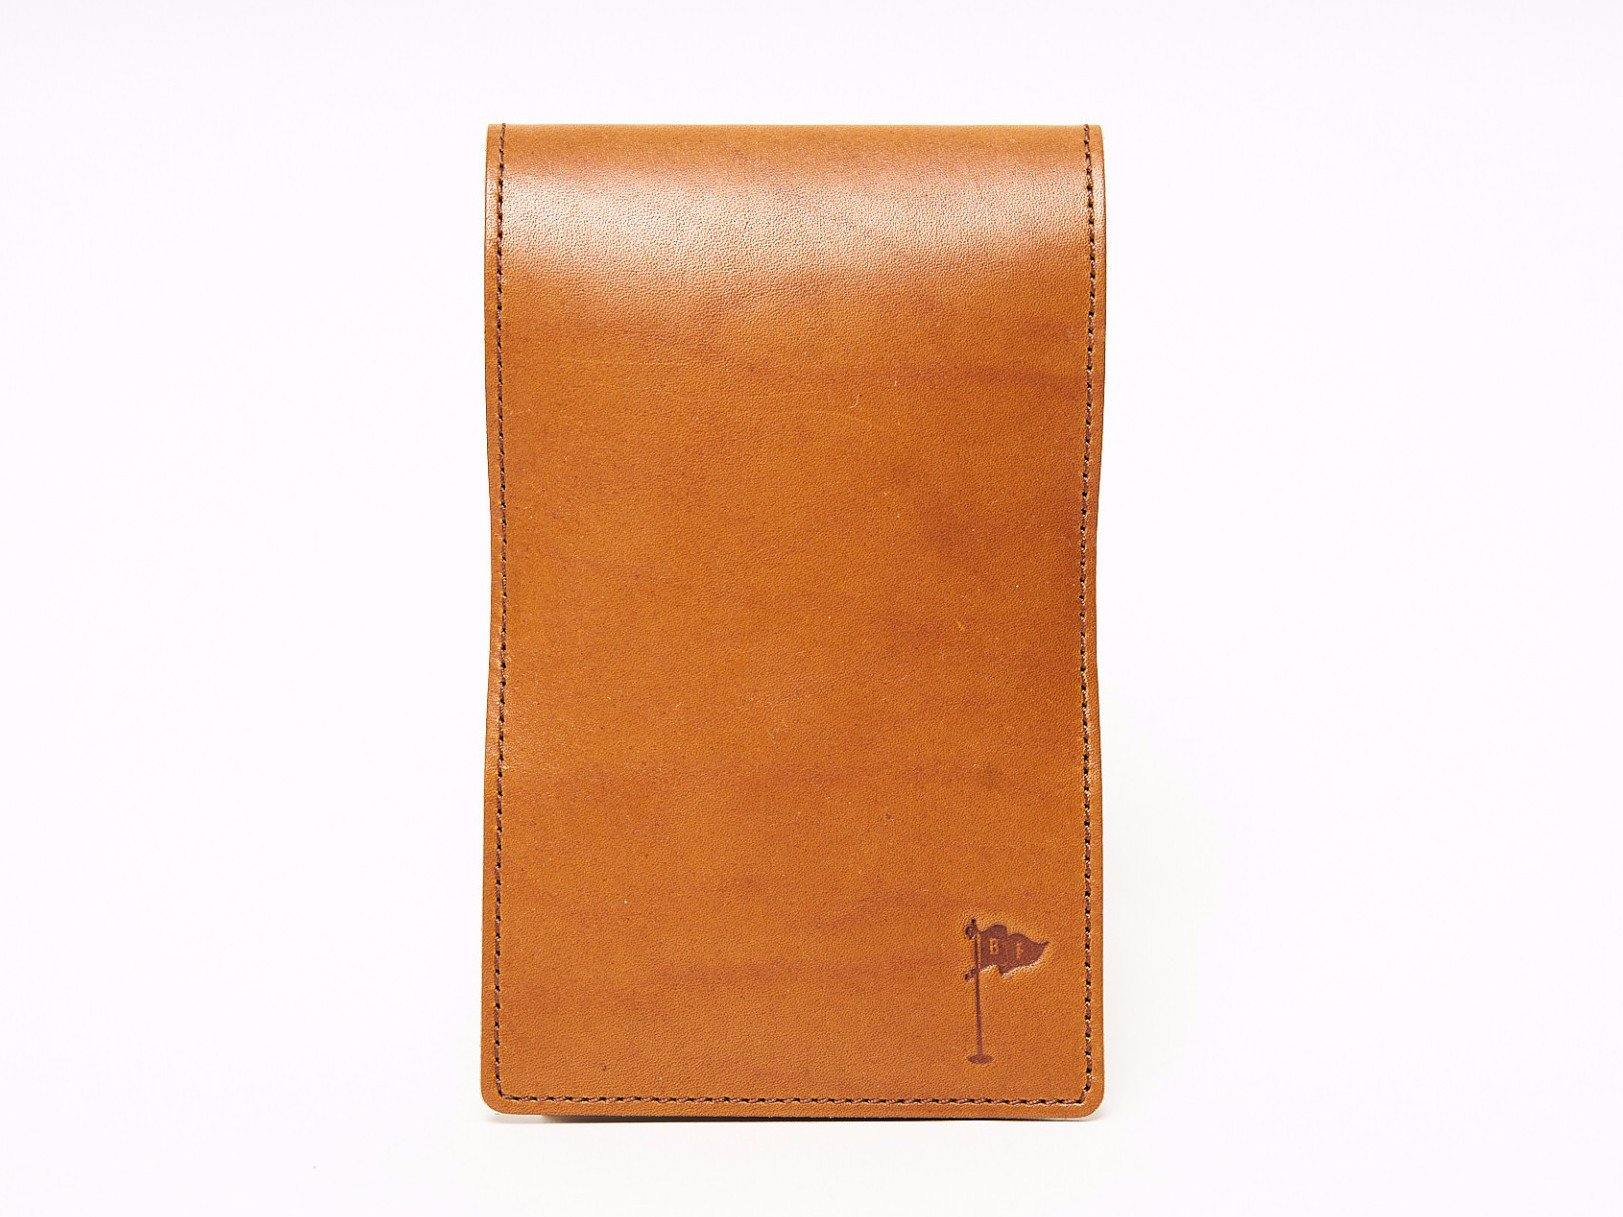 50e5ff77a28 Handmade Leather Golf Scorecard Holder   Yardage Book in Horween Essex  Tobacco